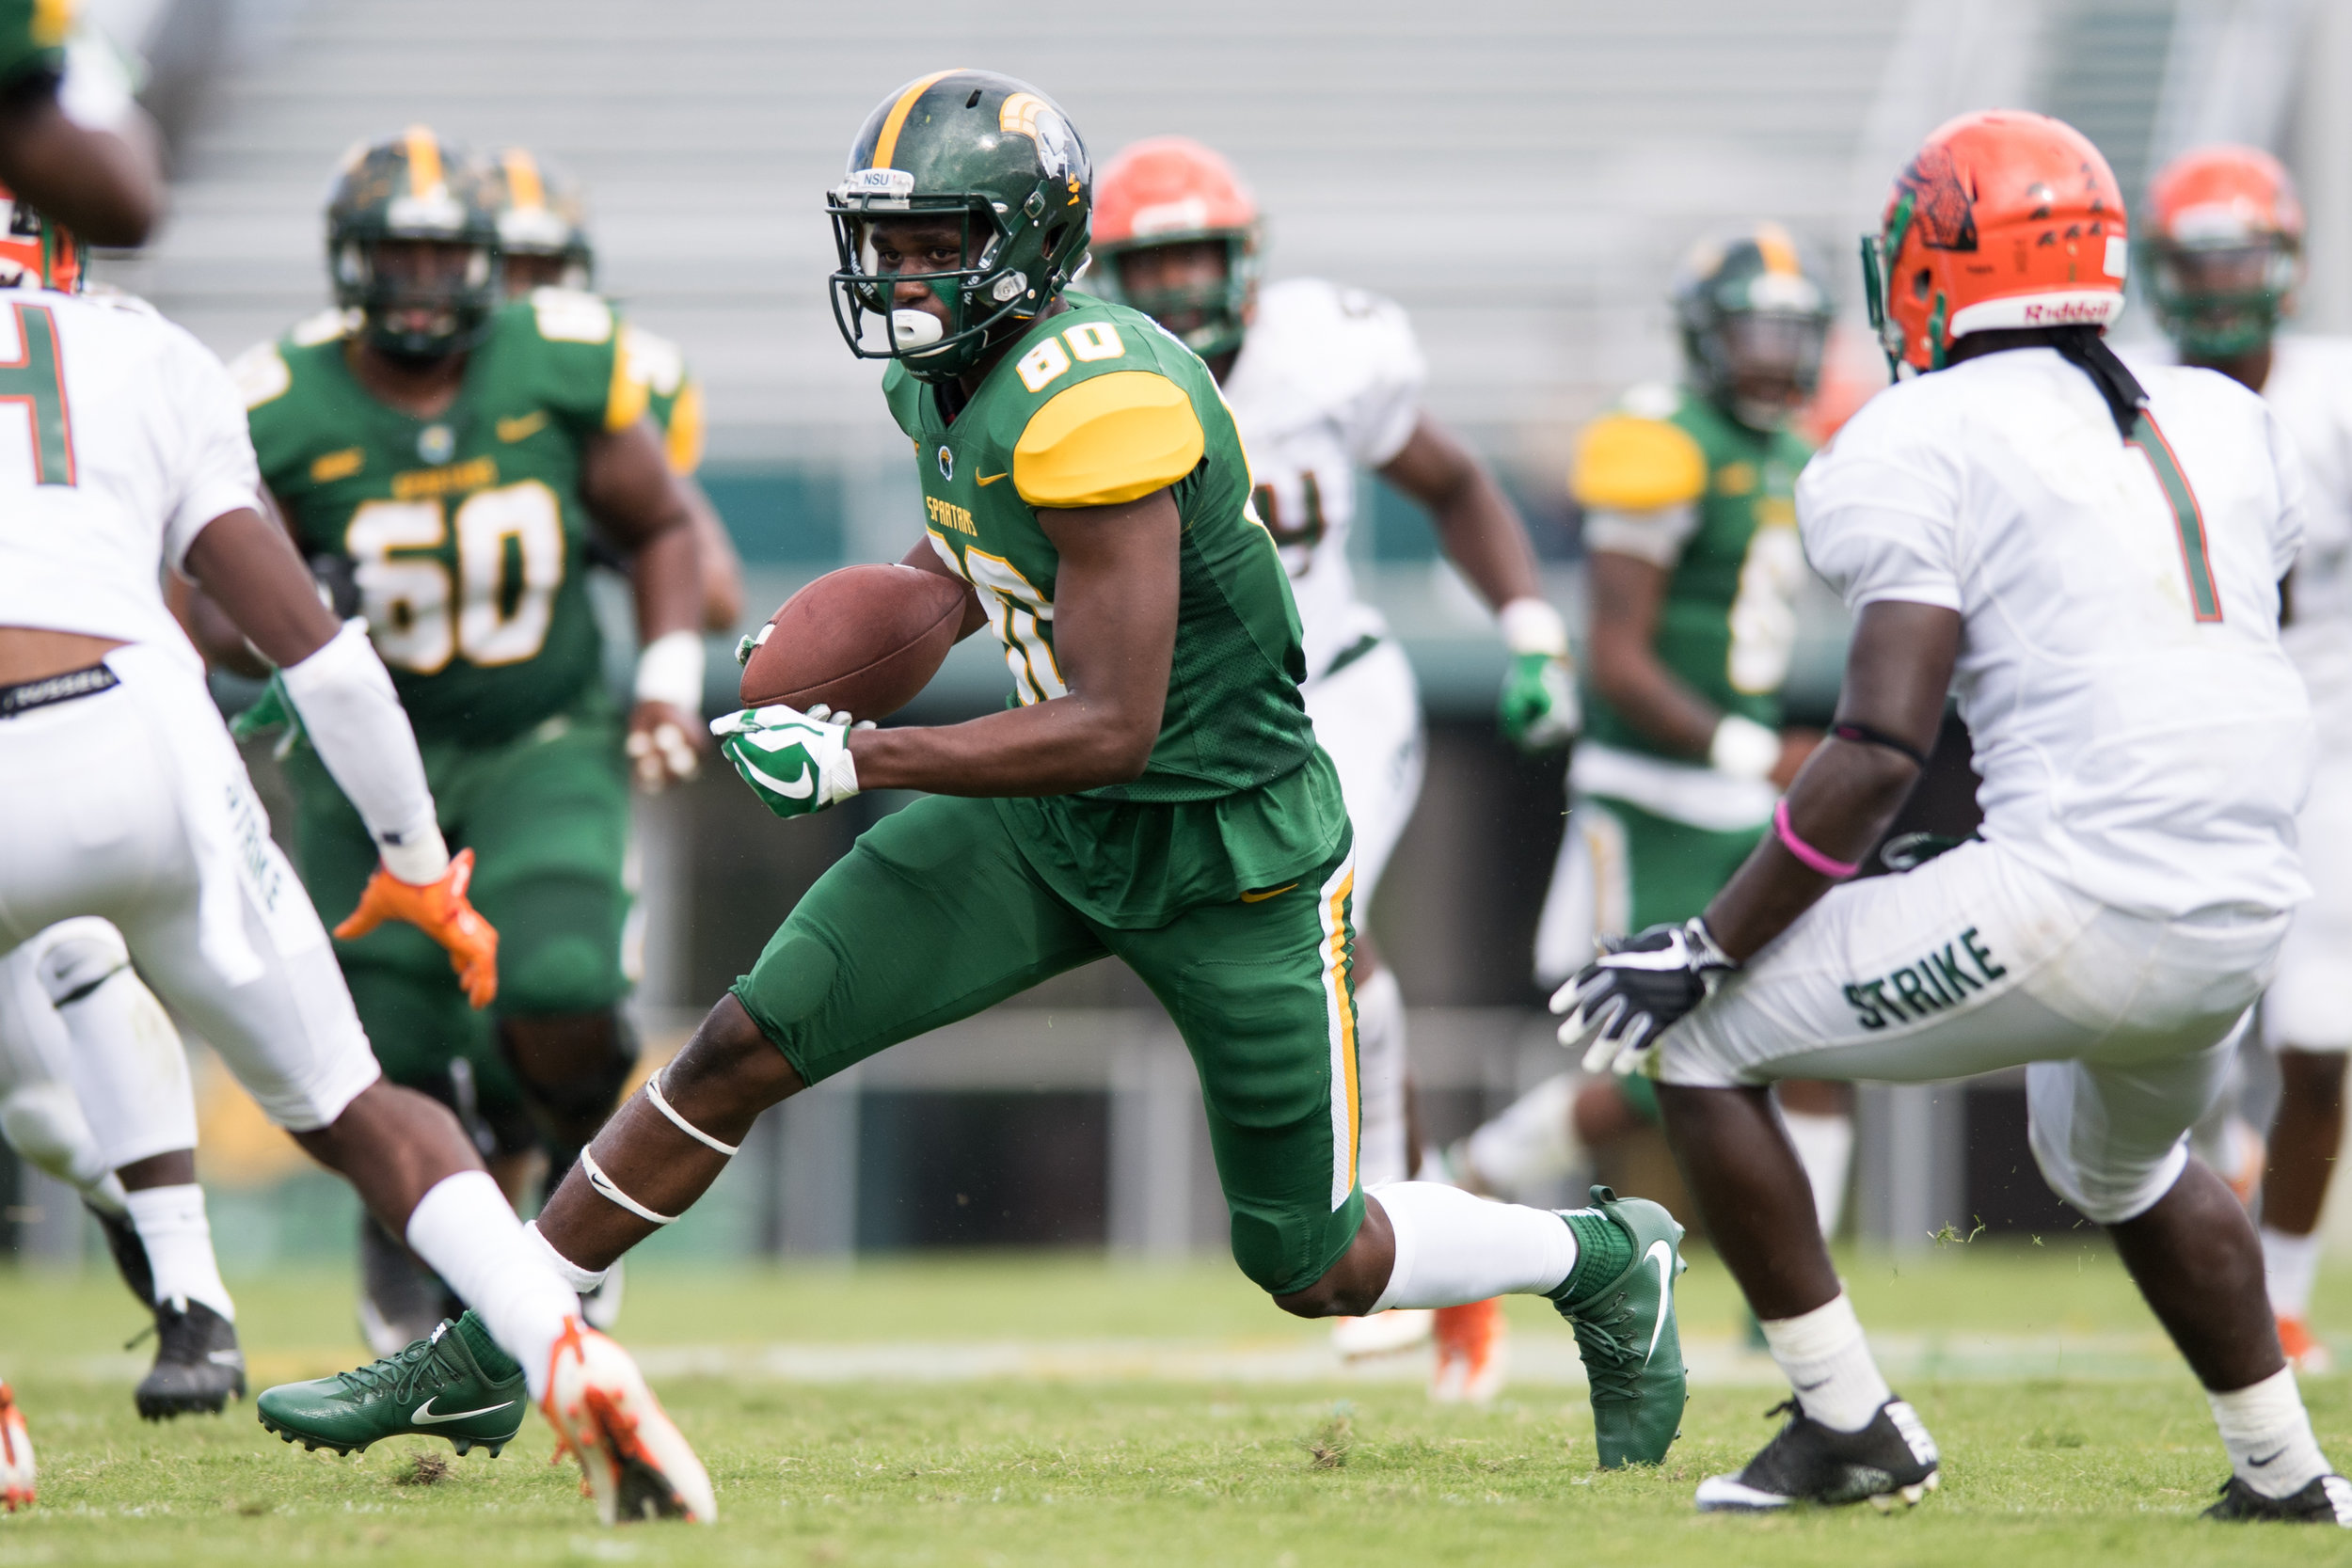 Norfolk State Spartans wide receiver Isaiah Winstead (80) makes a catch for a first down against the Florida A&M Rattlers during the Saturday, October 7th 2017 game held at Dick Price Stadium in Norfolk, Virginia. Score is tied 14-14 at the half.